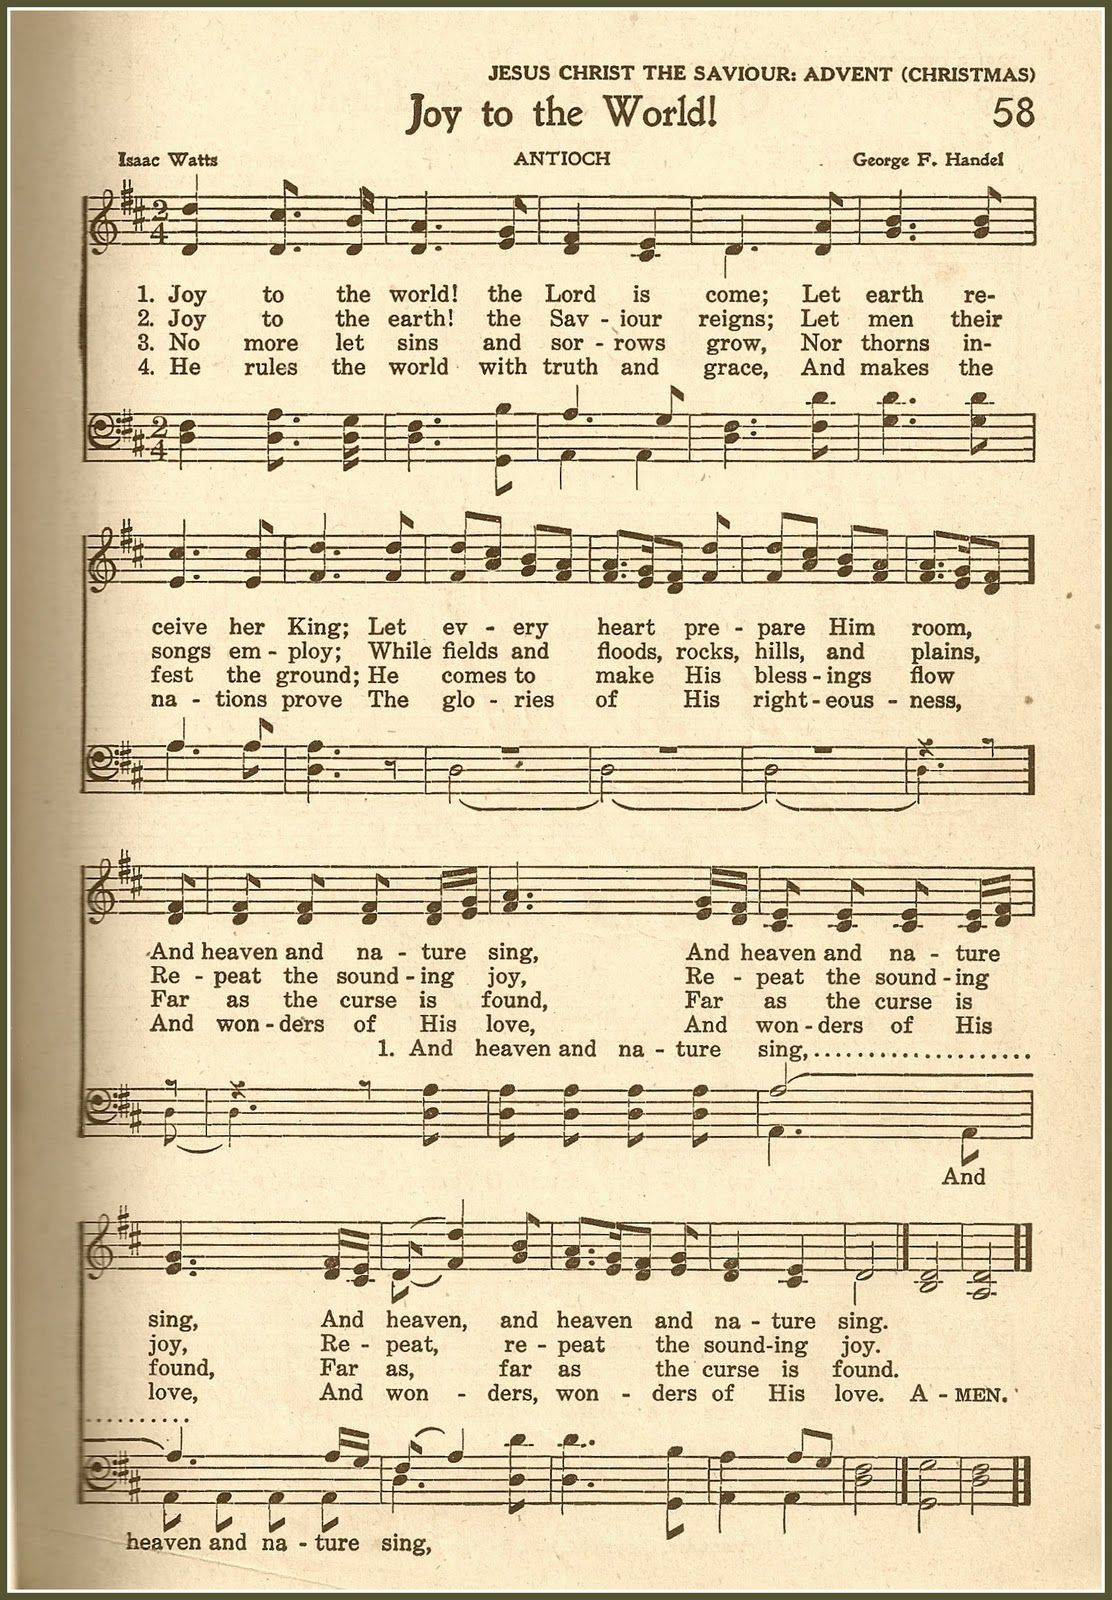 Oy To The World Is Such An Exuberant Hymn Written By Isaac Watts In The S It S Amazing